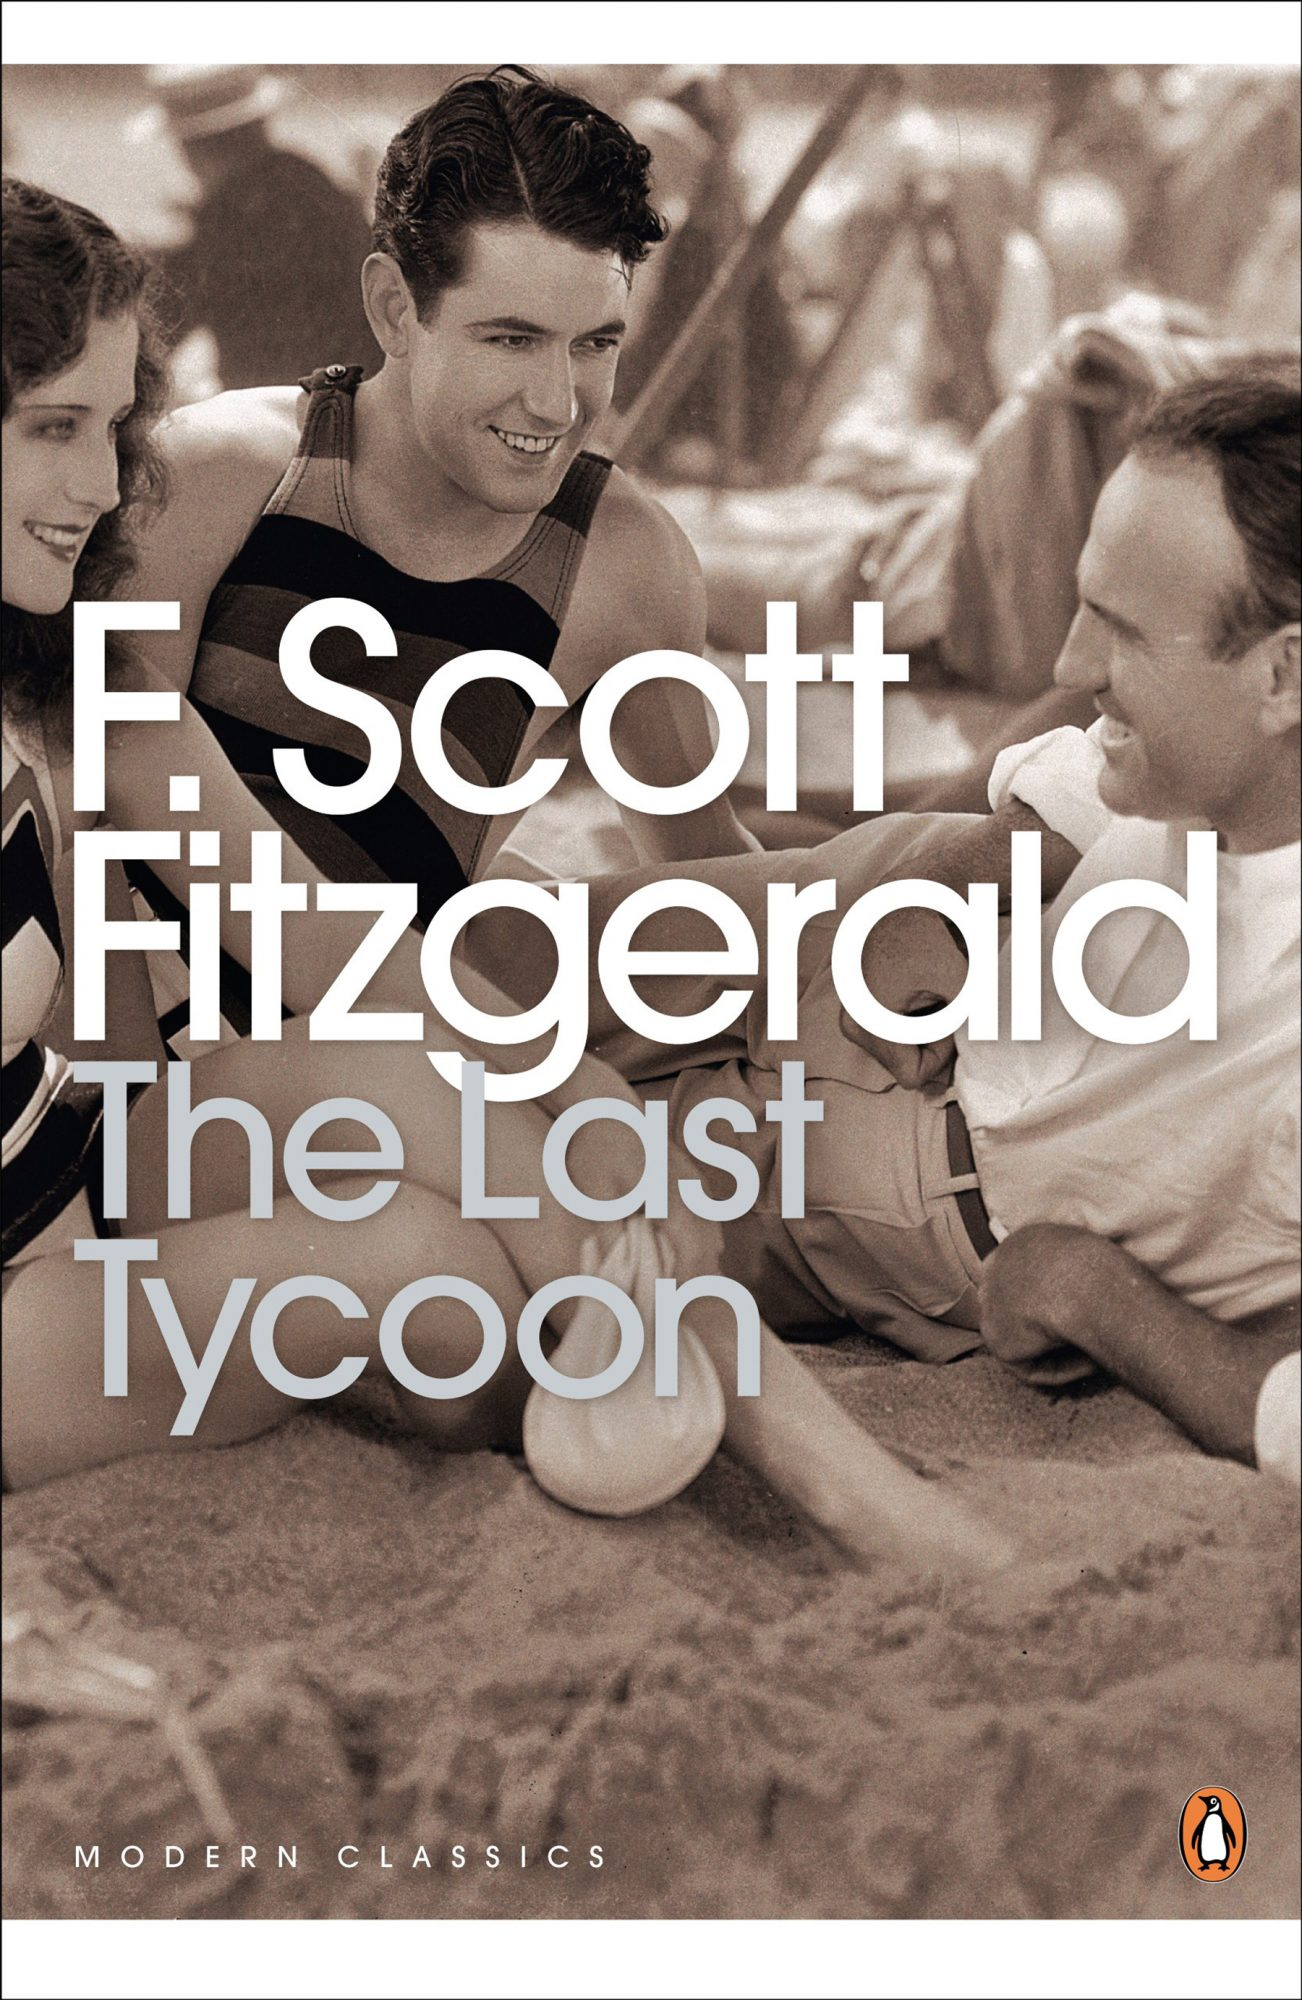 The Last Tycoon, by F. Scott Fitzgerald